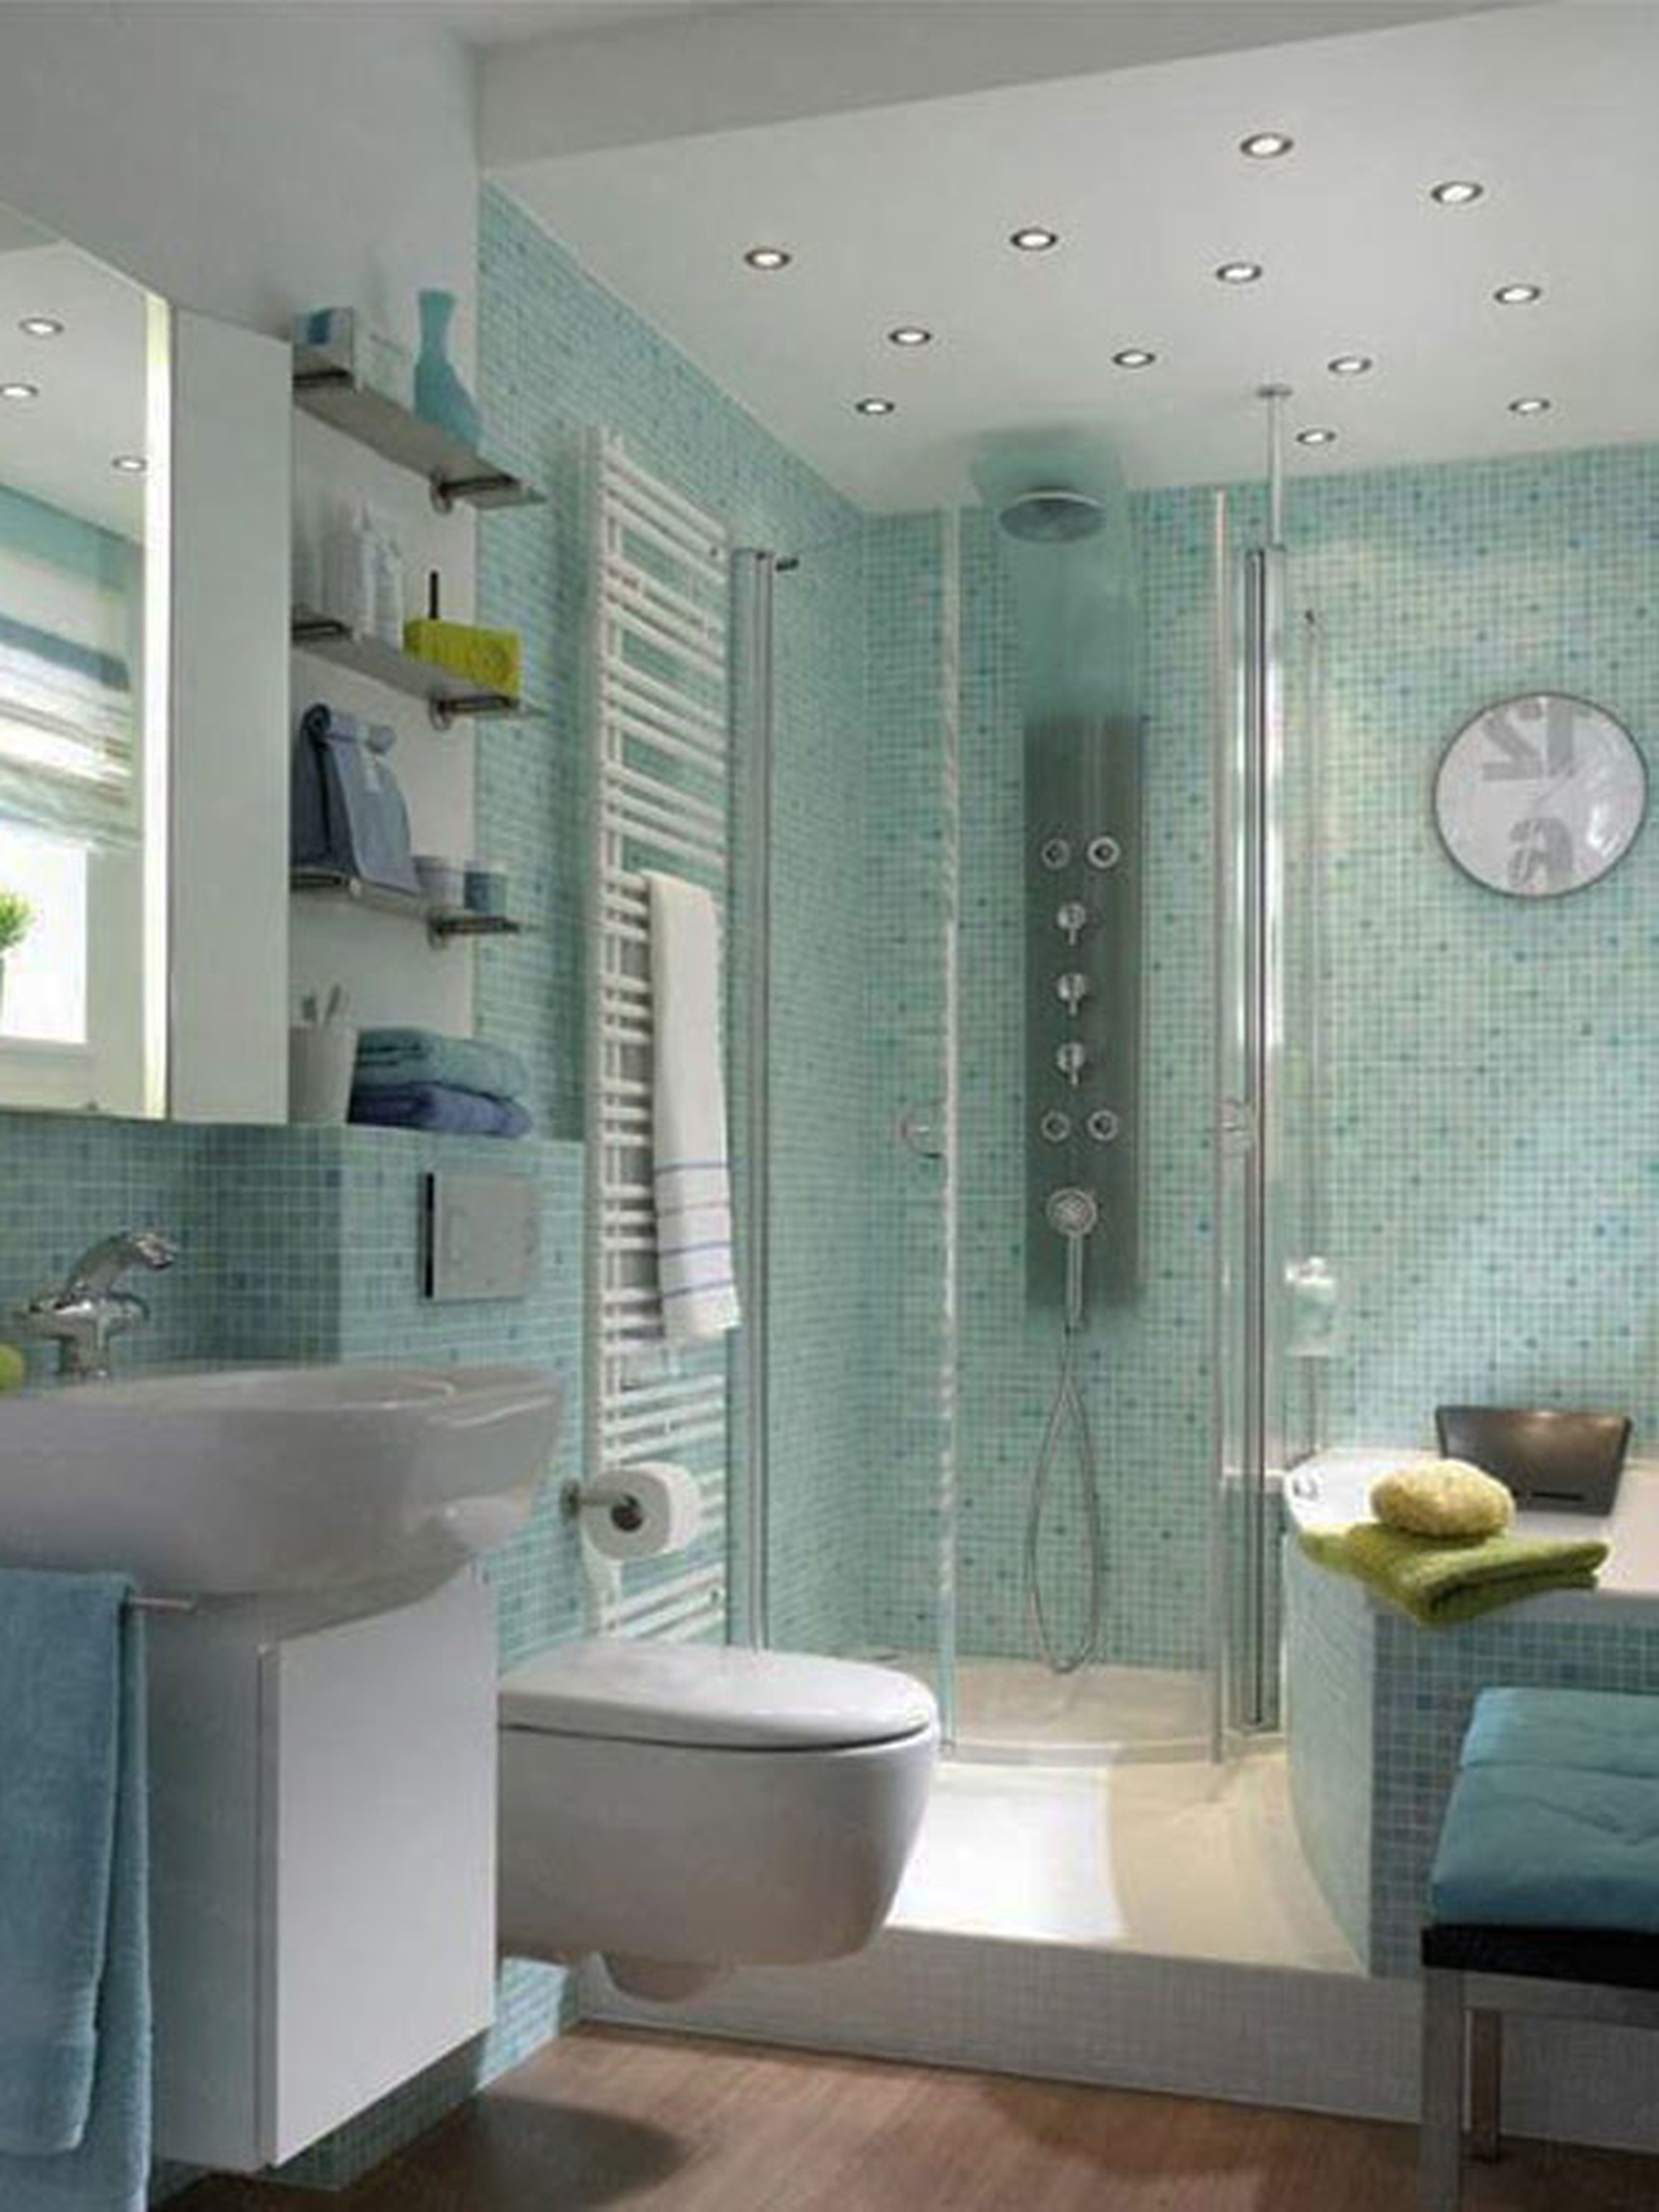 fancy design interactive bathroom 7 simple excellent home on cool small bathroom design ideas id=67862